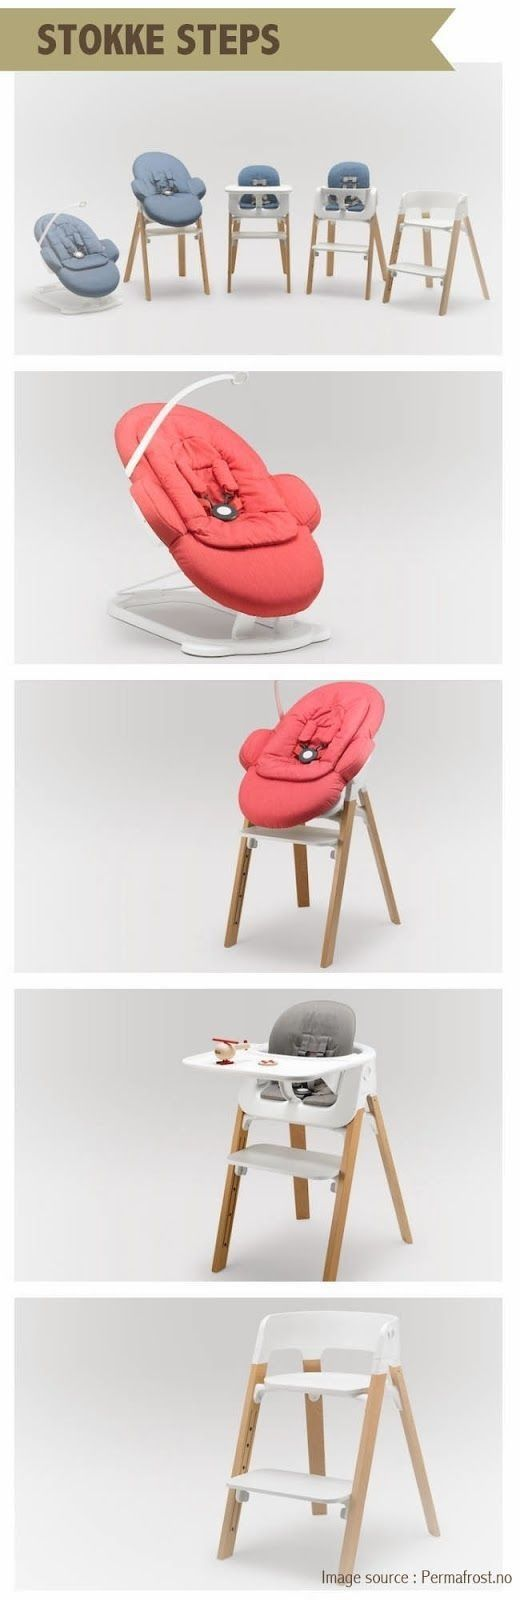 Stokke high chair cherry - Stokke Steps Chair The Innovative Chair That Grows With Your Baby From Newborn To Ten